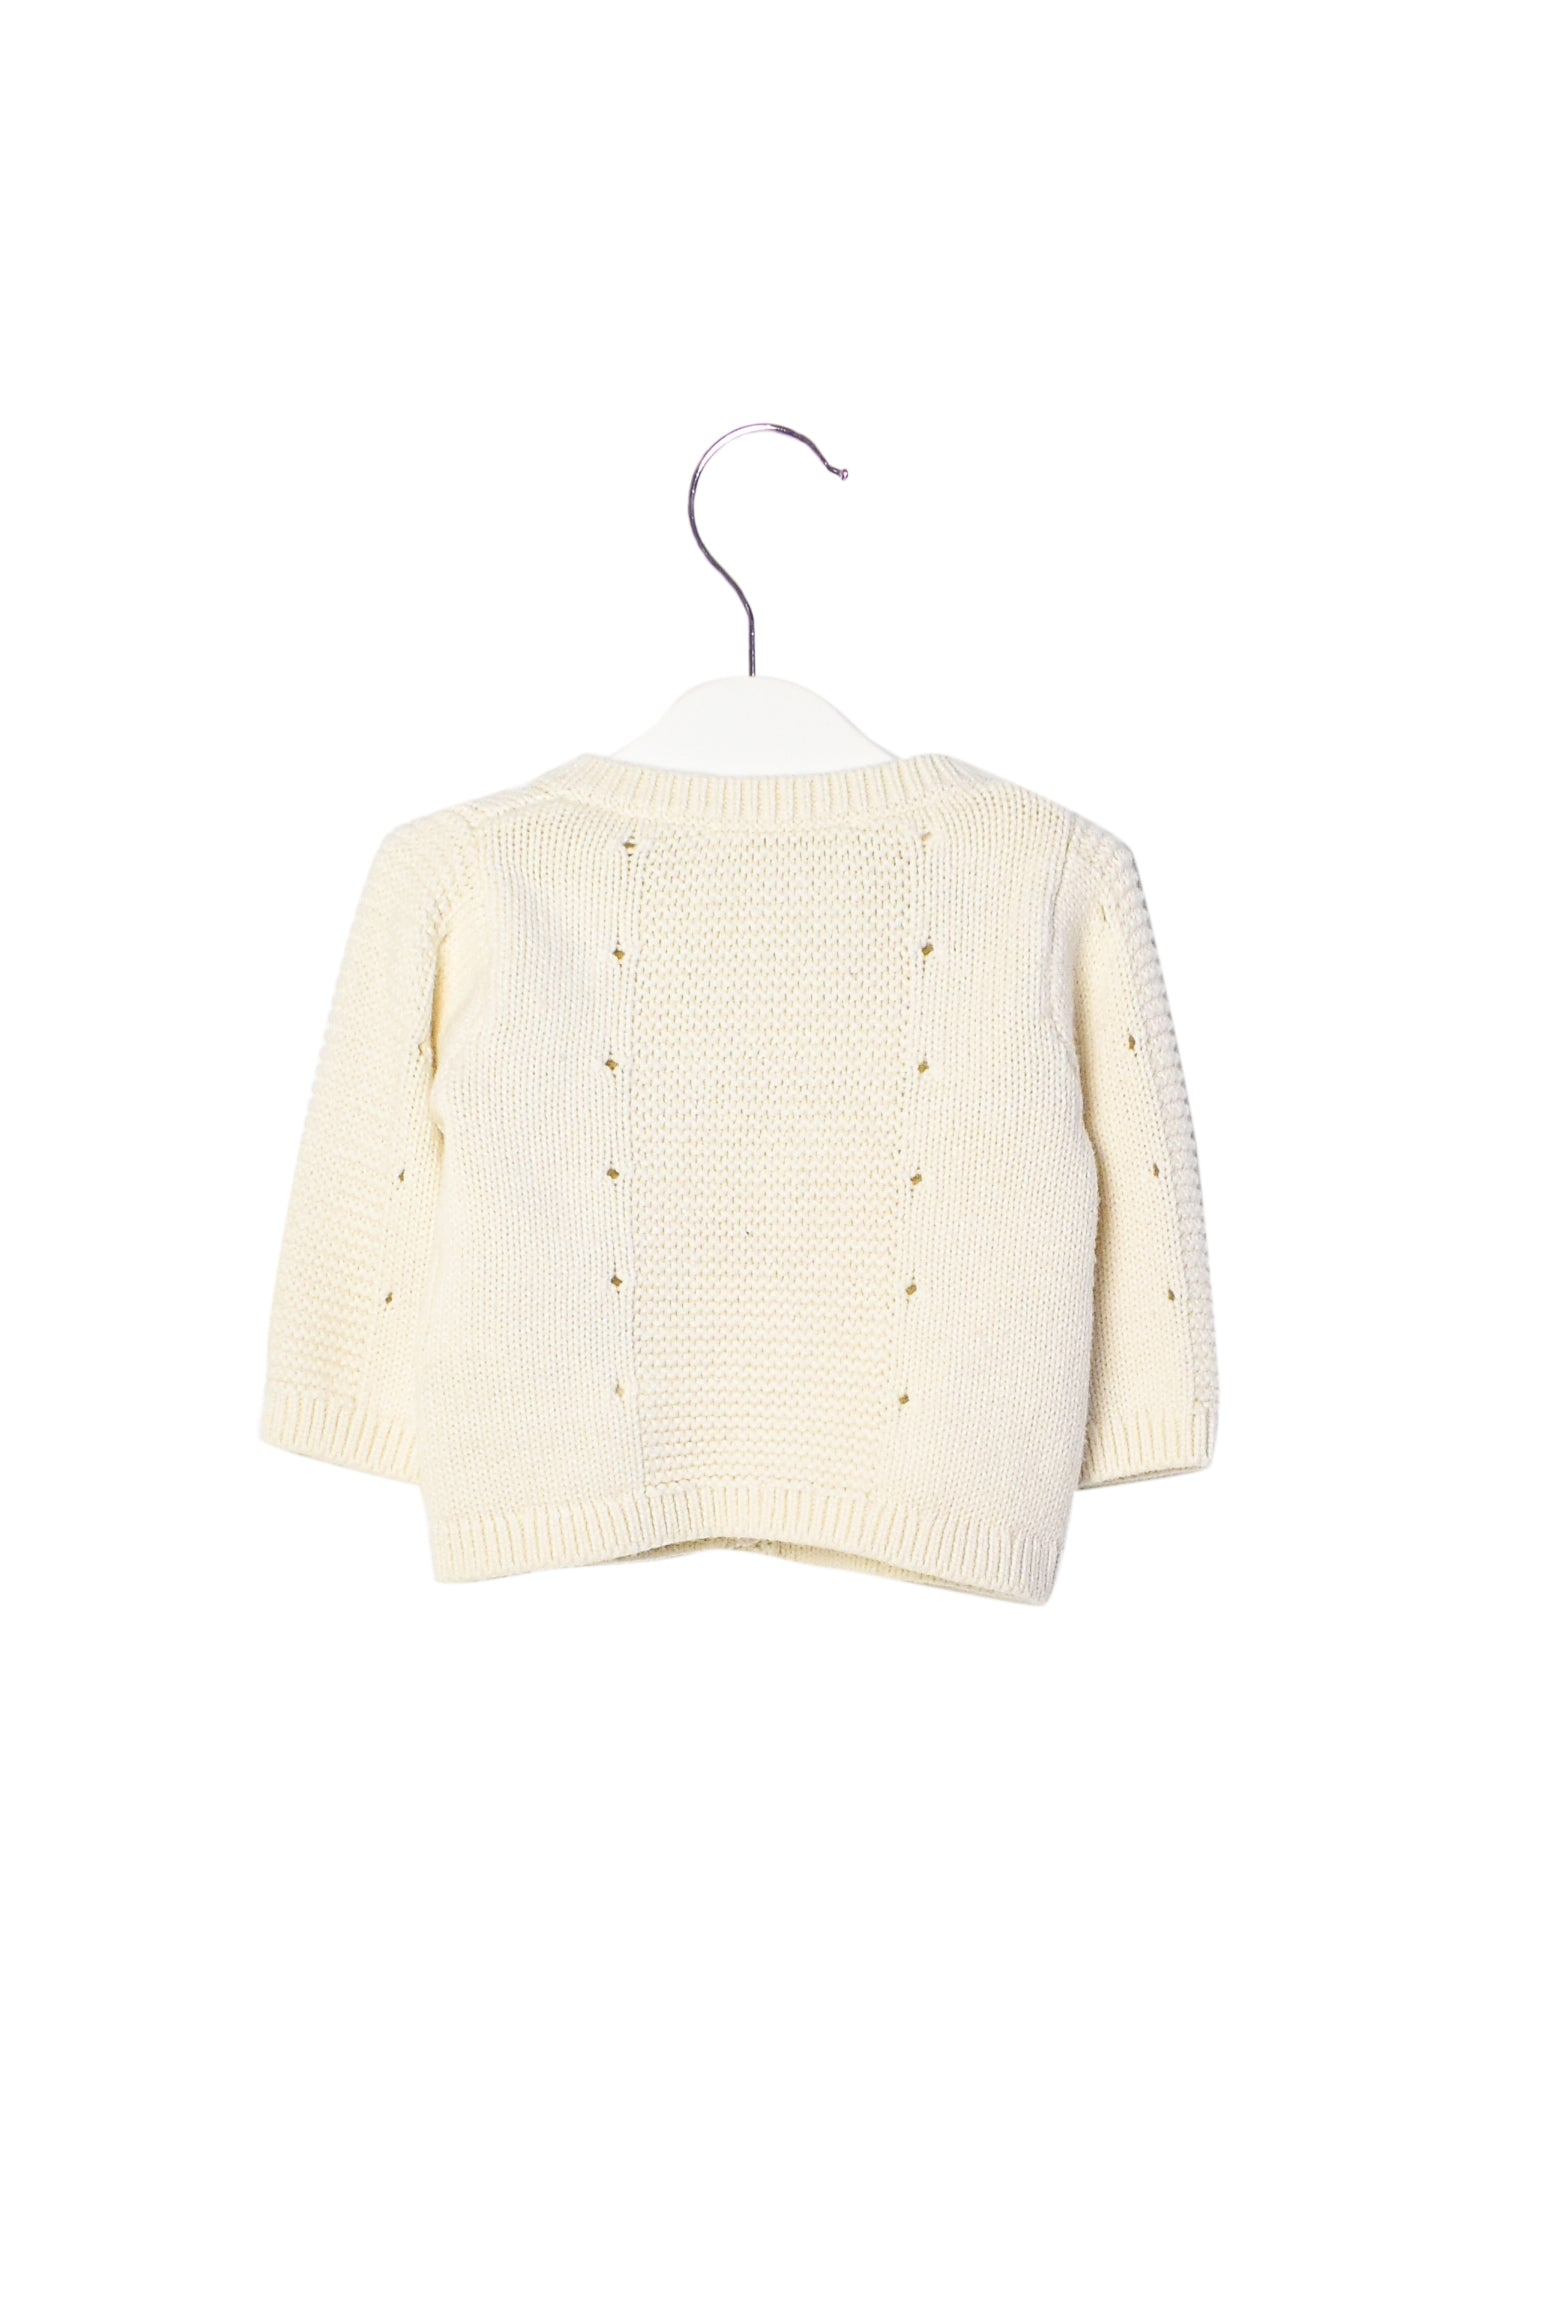 10007725 Jacadi Baby~ Cardigan 3M at Retykle